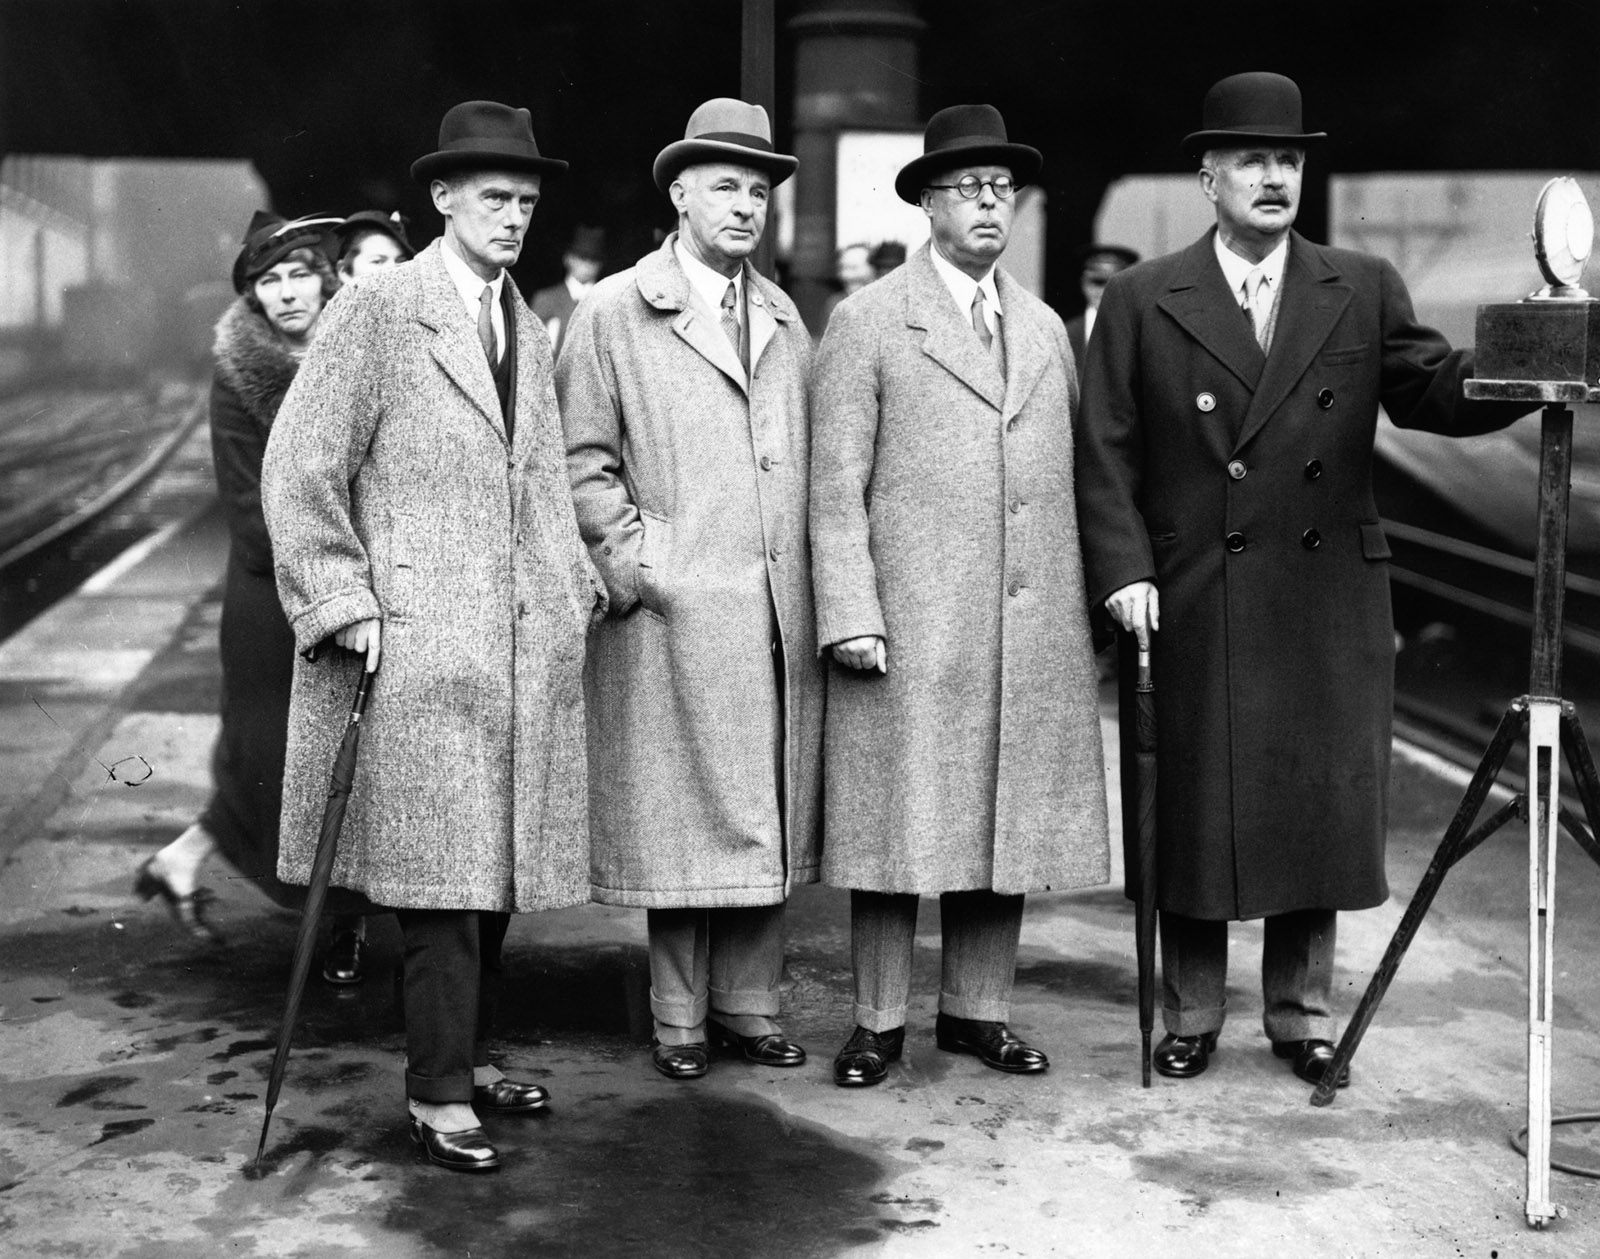 Reginald Coupland and other members of the Royal Palestine Commission